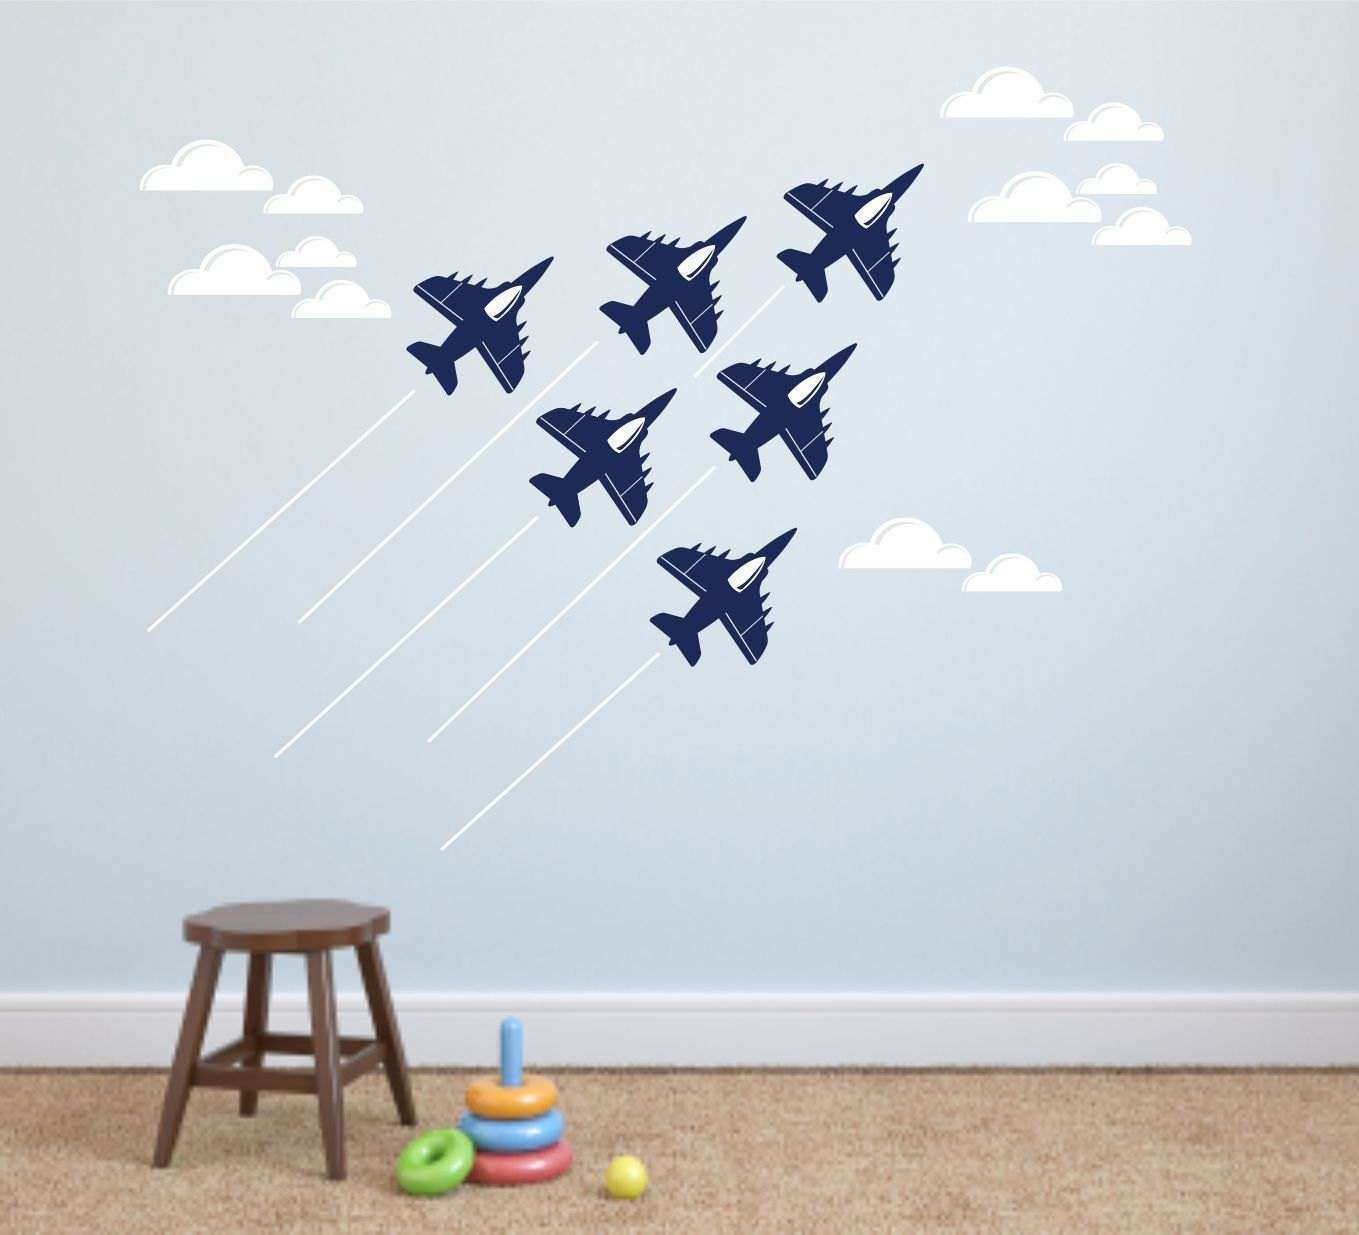 Jet airplane wall decal cloud wall decals Navy Air Force